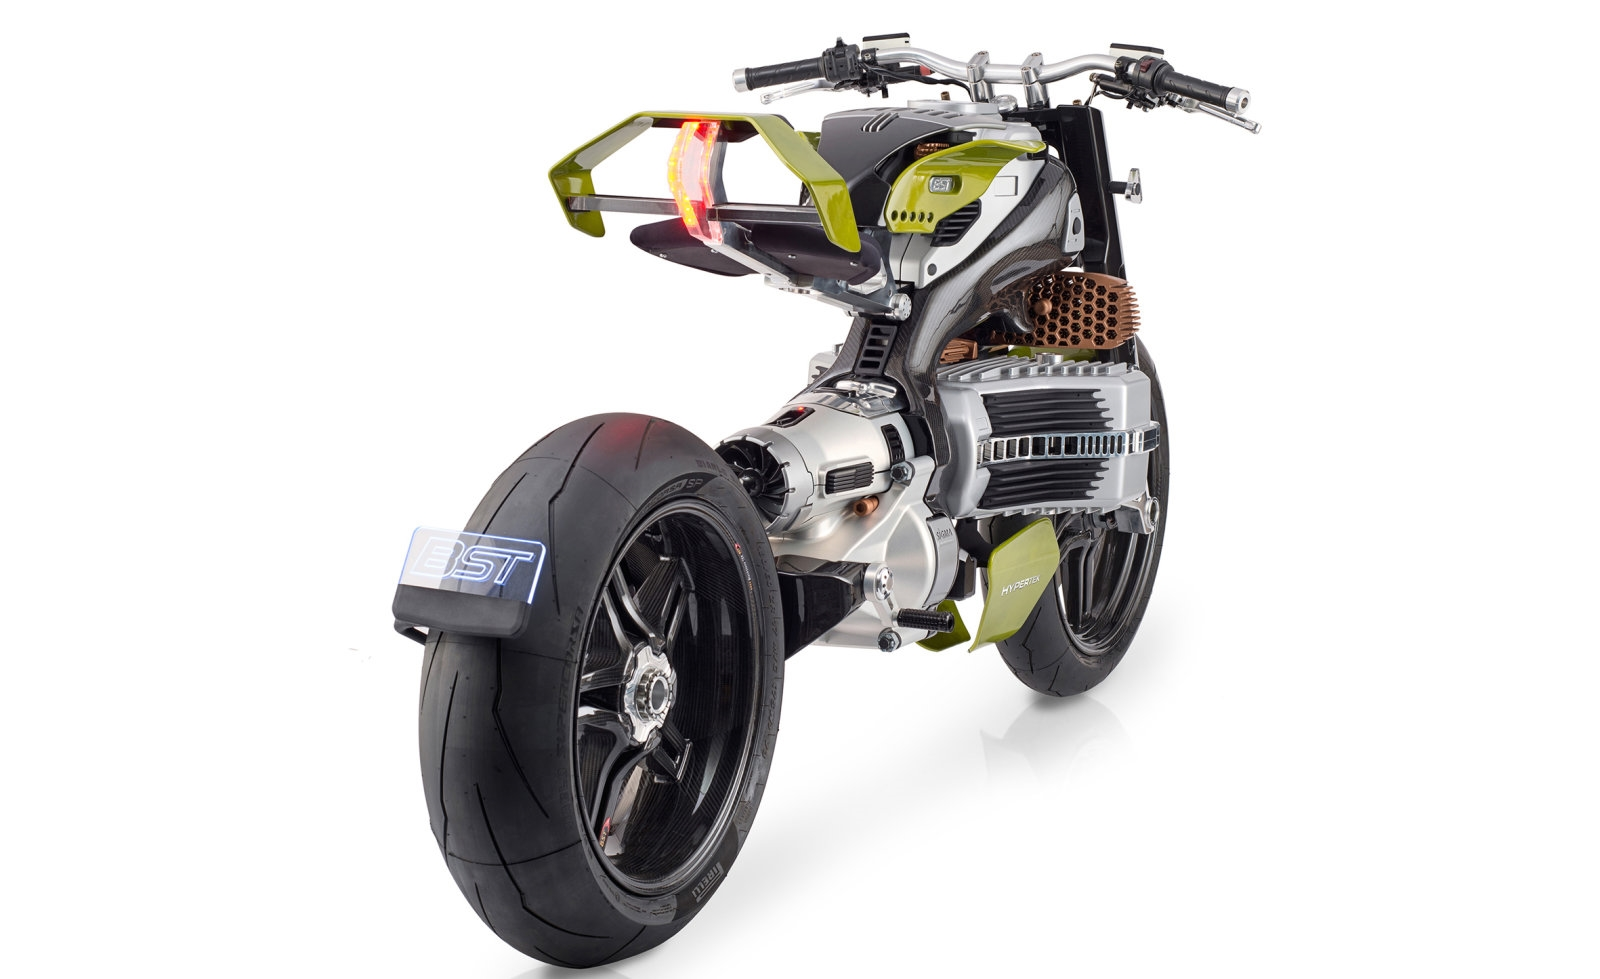 Blackstone HyperTek electric motorcycle smashes all molds | DeviceDaily.com